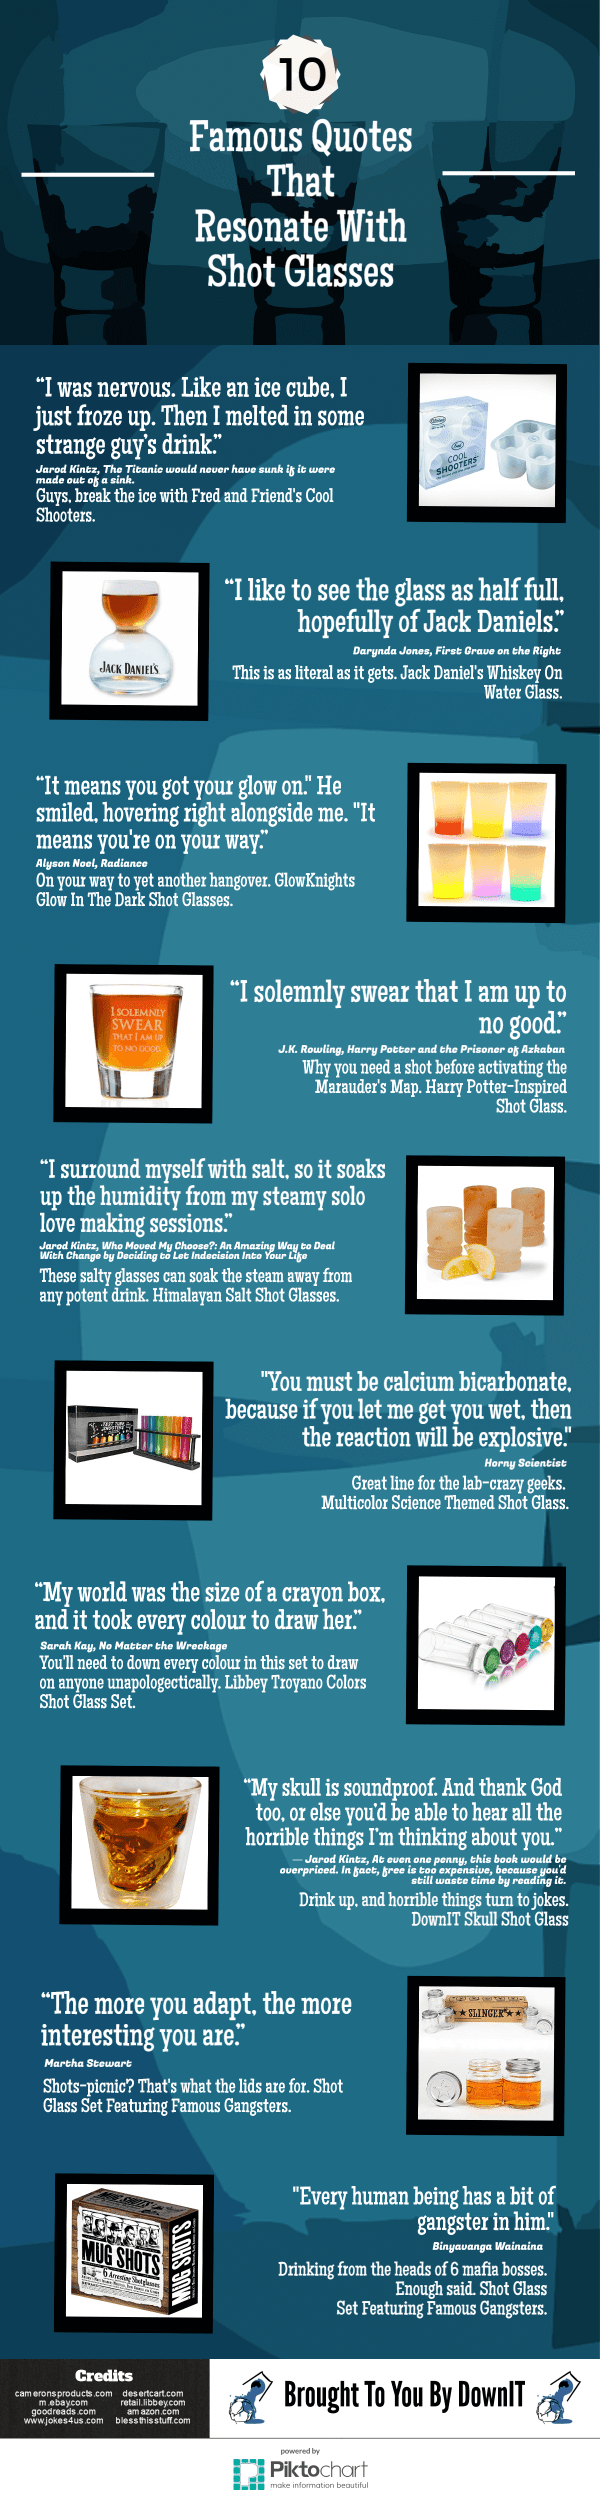 10 Famous Quotes That Resonate With Shot Glasses Infographic